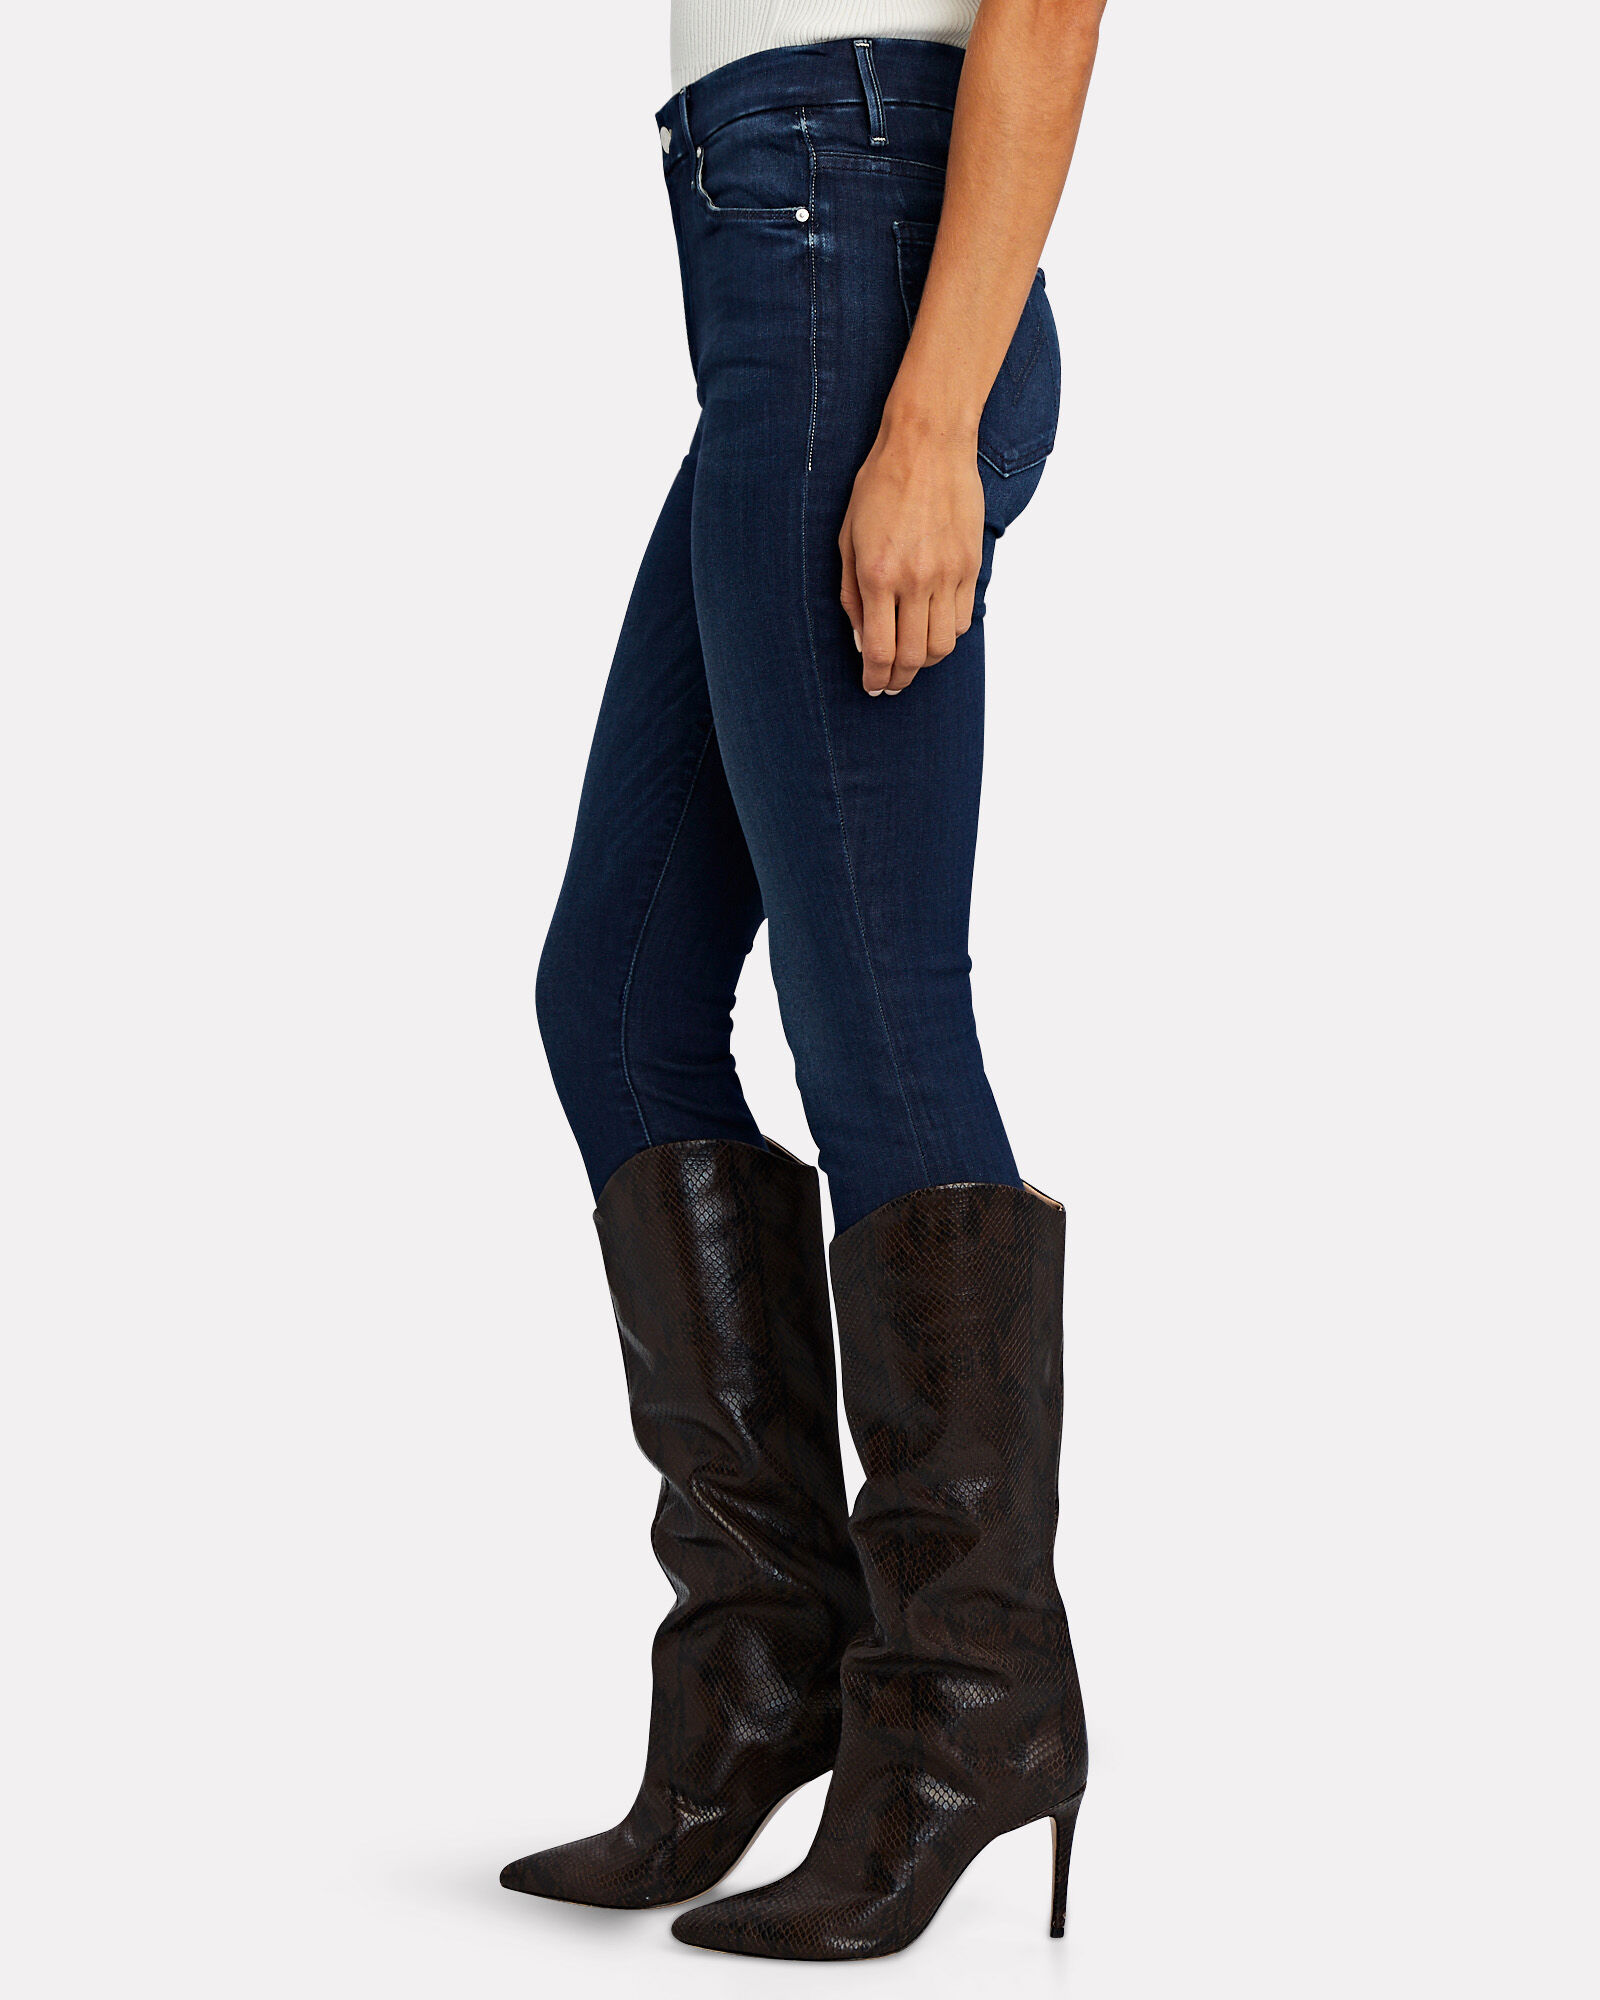 The Looker Ankle Fray Skinny Jeans, TONGUE IN CHIC, hi-res